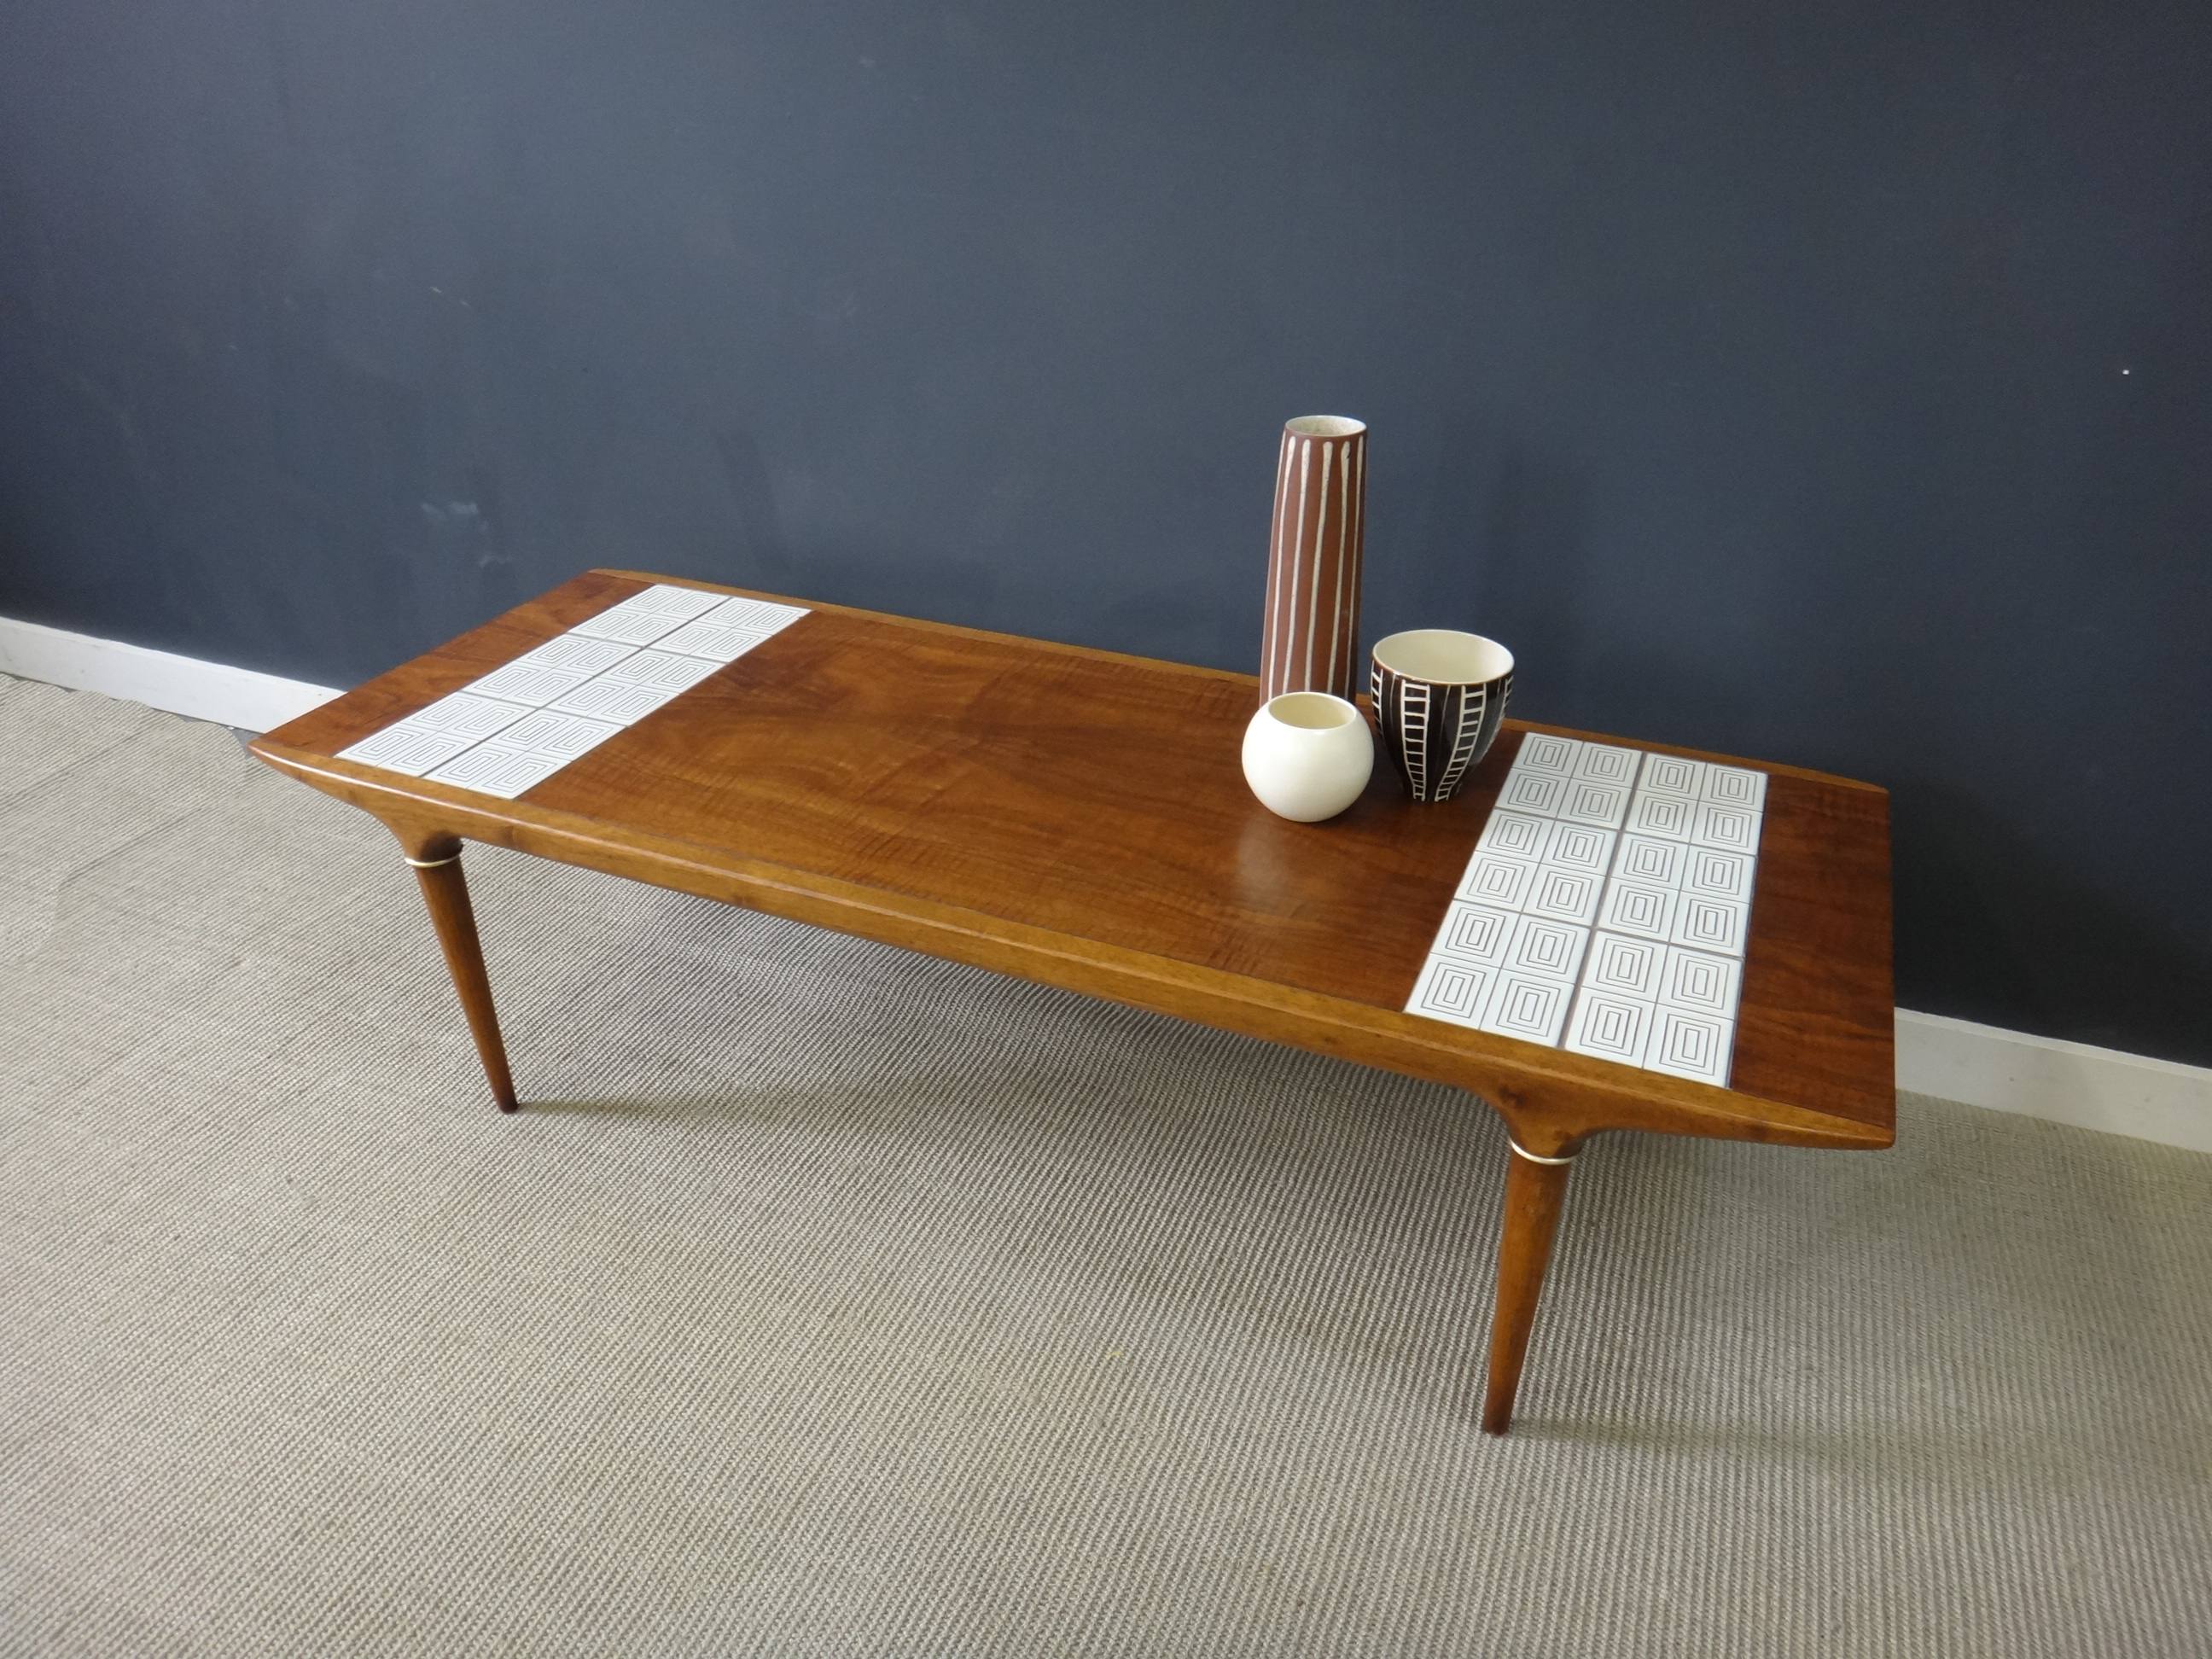 Mid Century Walnut and Tile Coffee Table Retrocraft Design